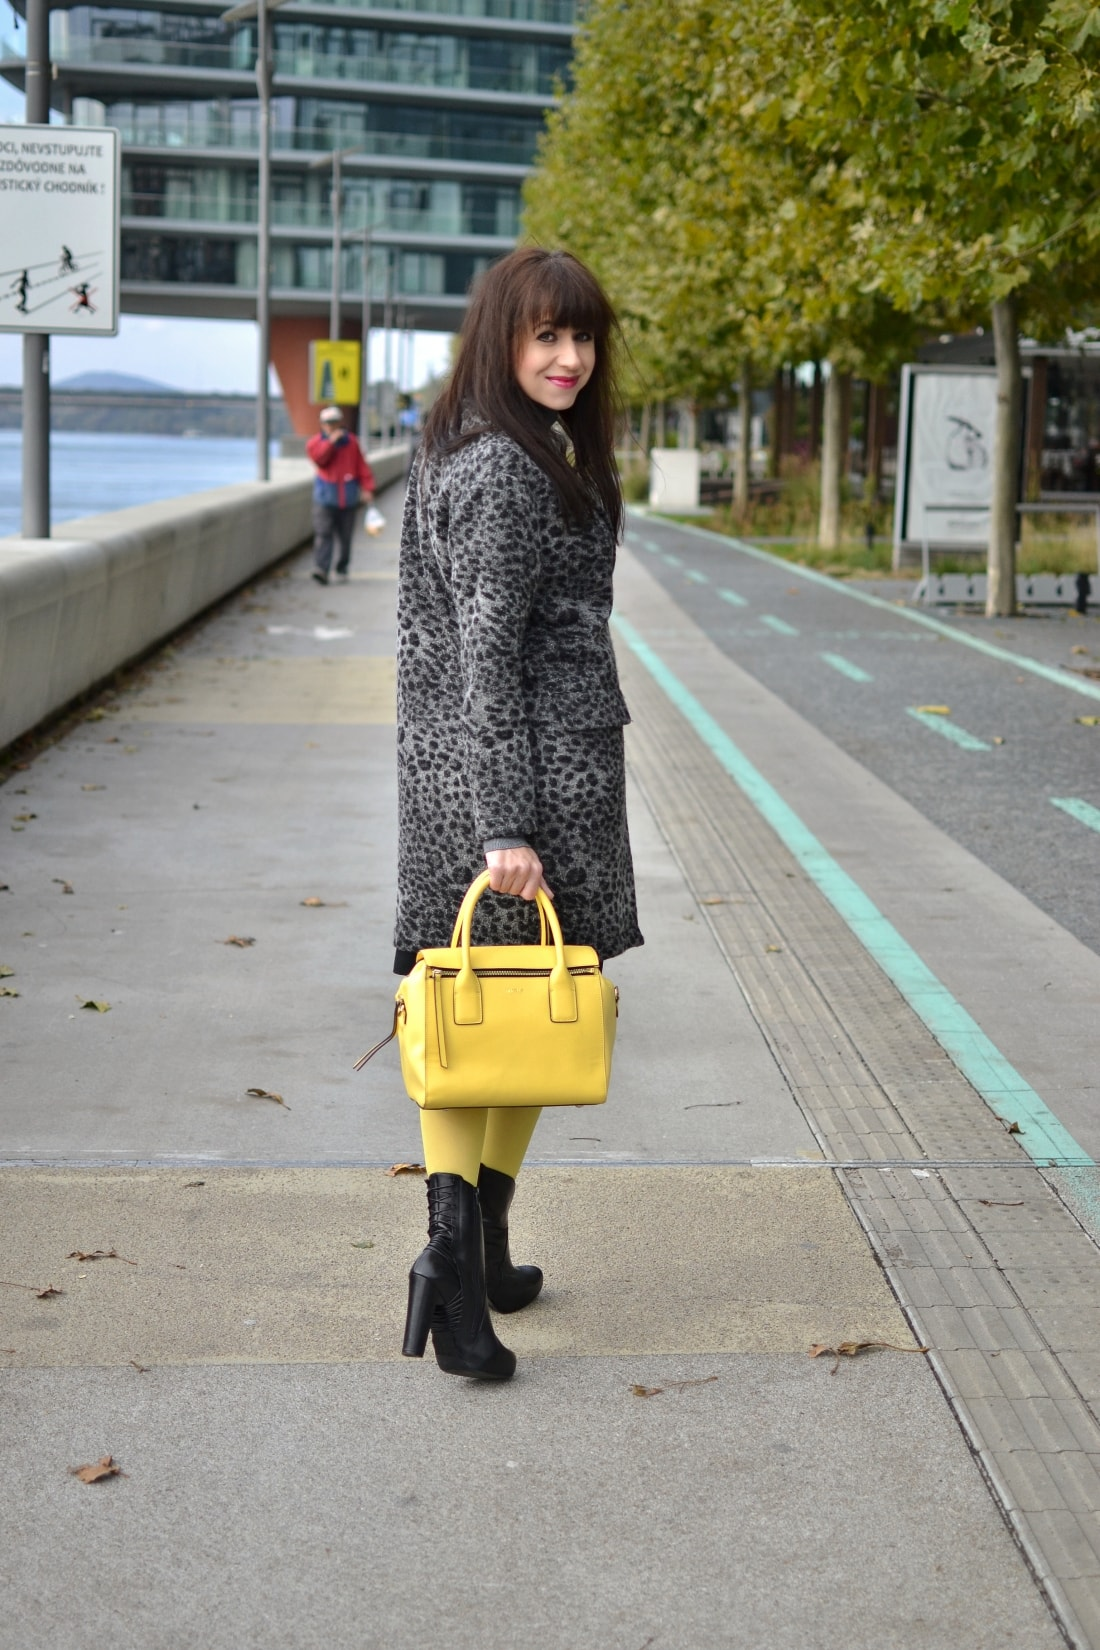 katharine-fashion-is-beautiful-blog-ako-nosit-zvieraci-motiv-3-outfit